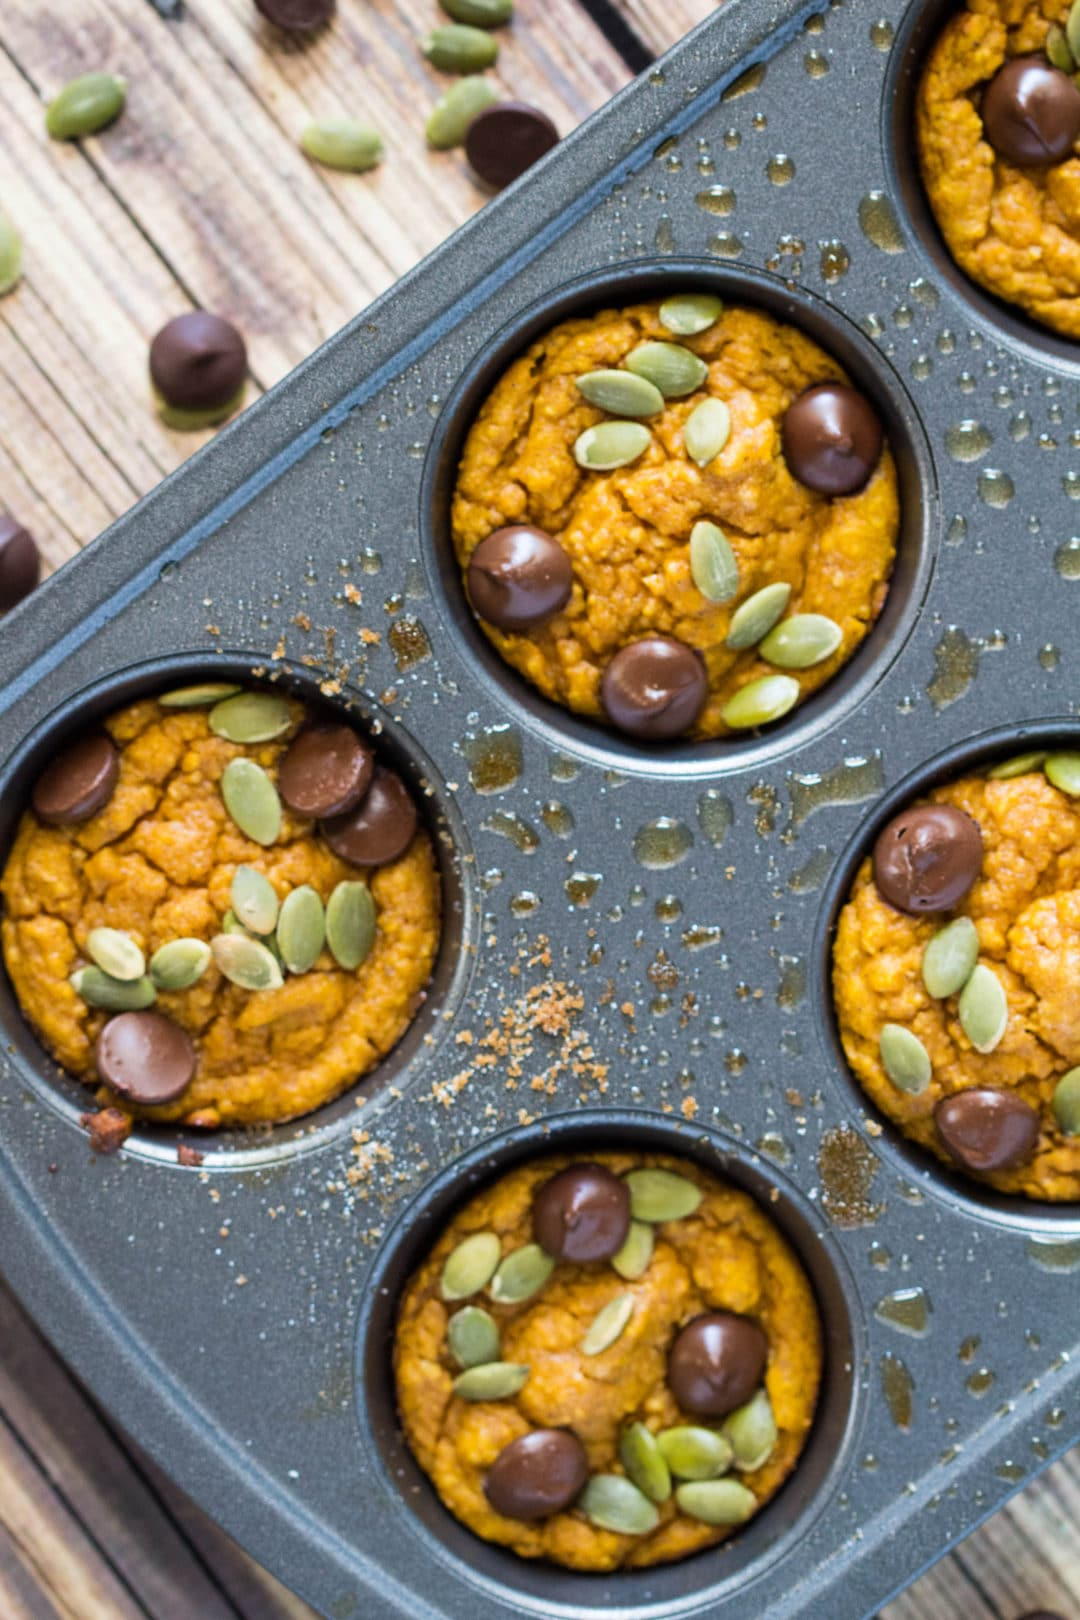 Pumpkin muffins with chocolate chips in a cupcake tin.